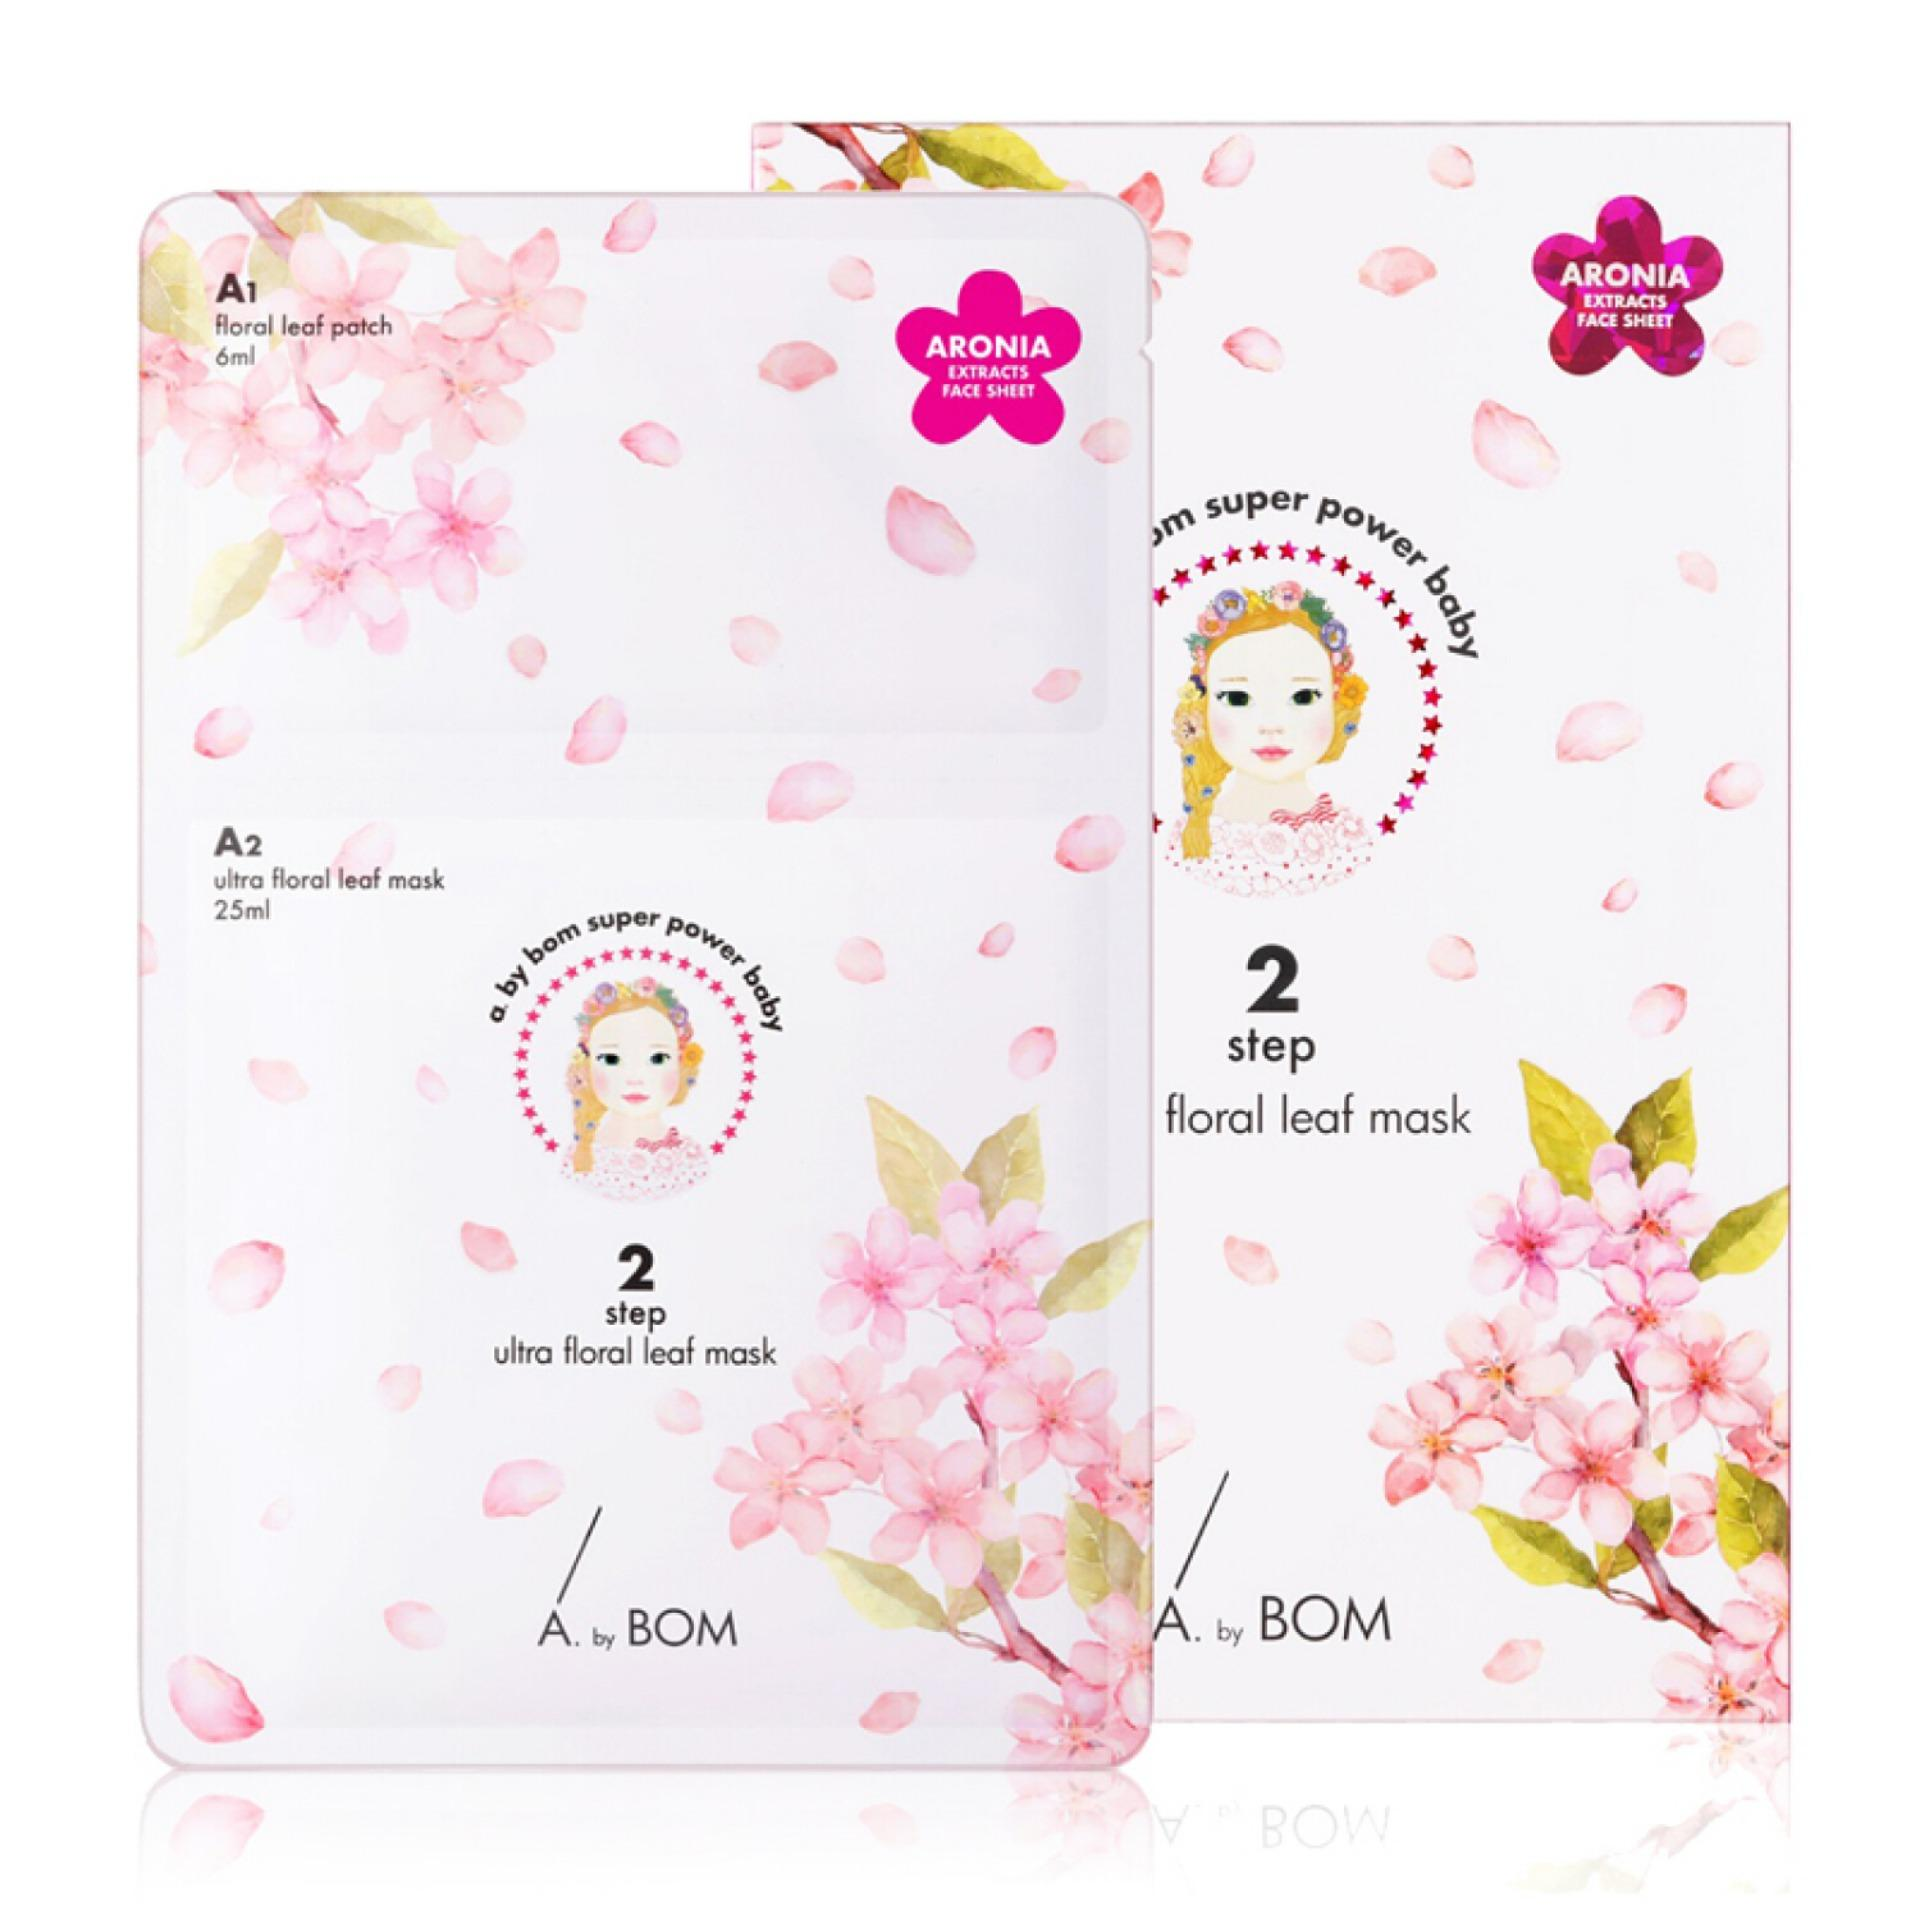 Buying A By Bom Super Power Baby 2 Step Ultra Floral Leaf Mask 5Pcs